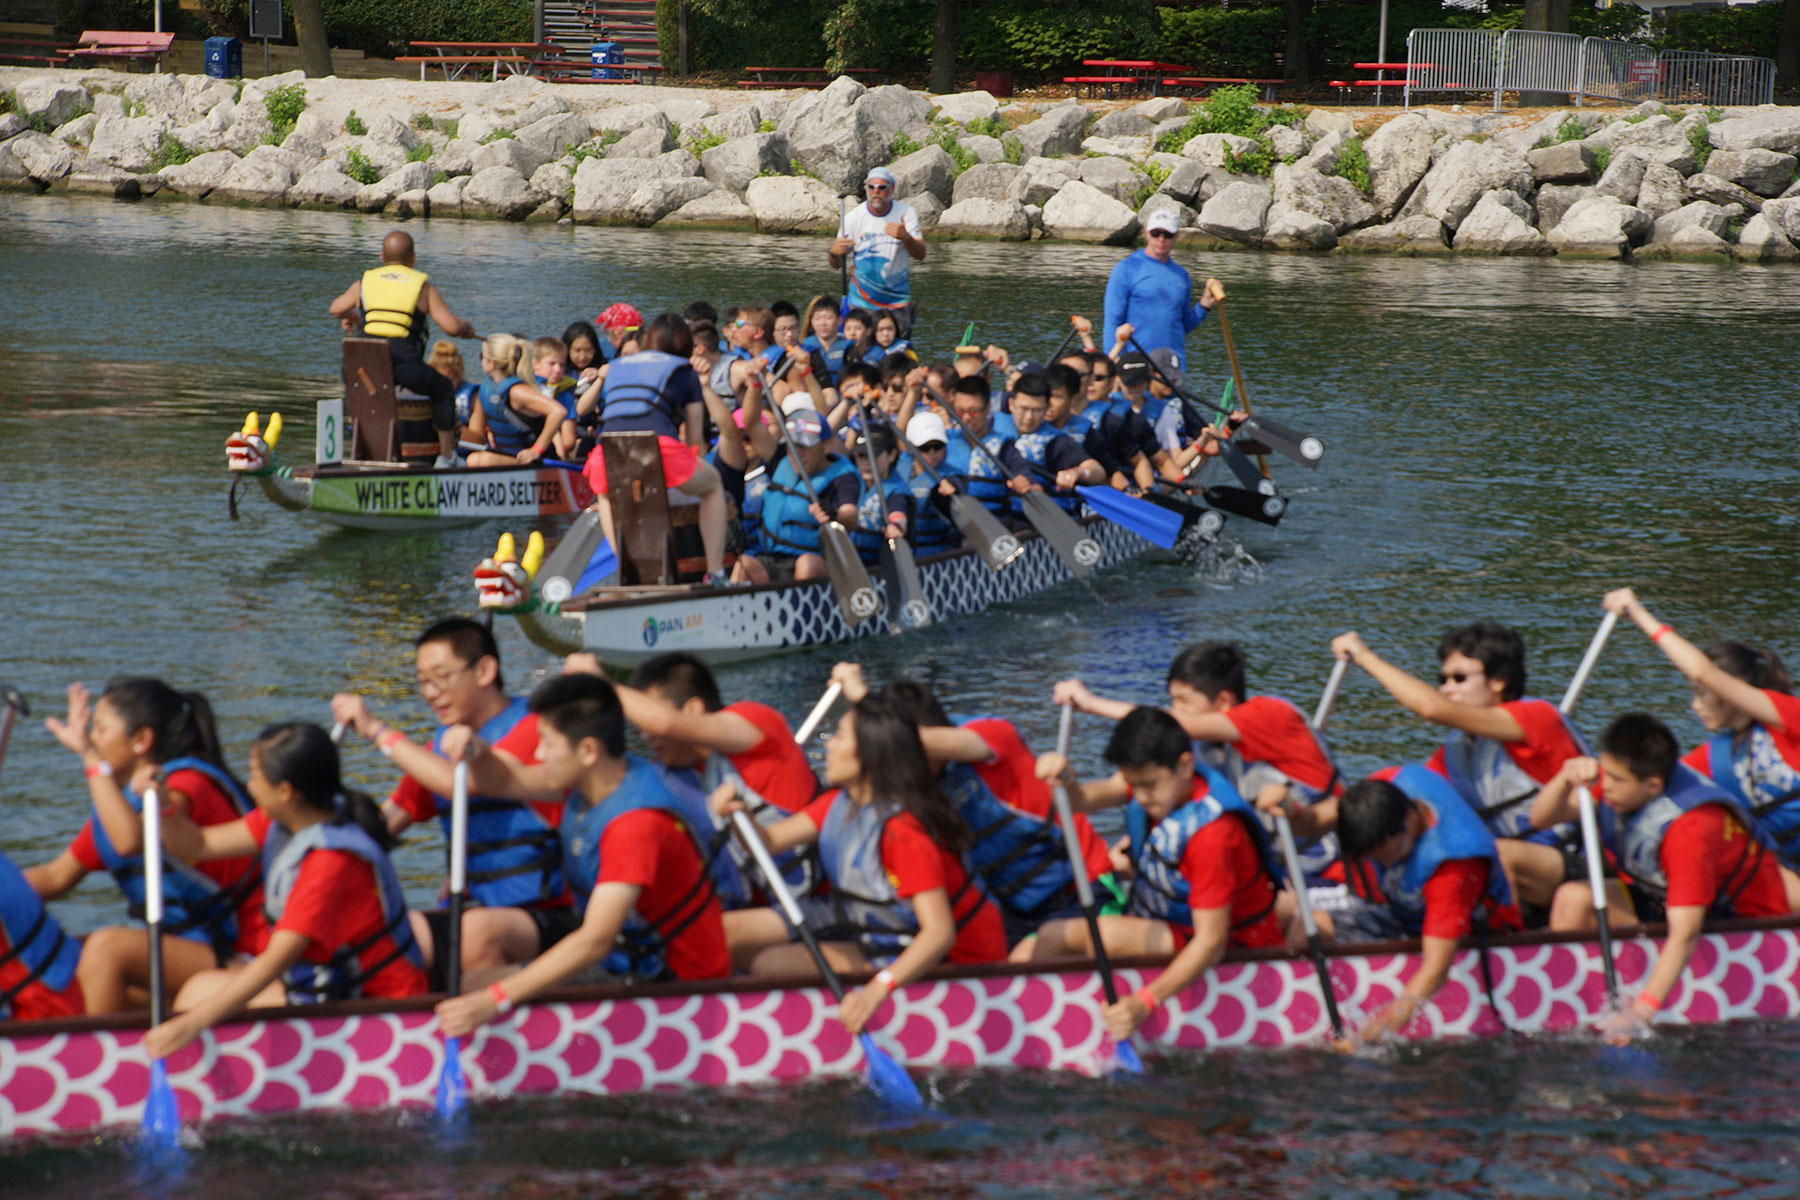 081118_dragonboat_540